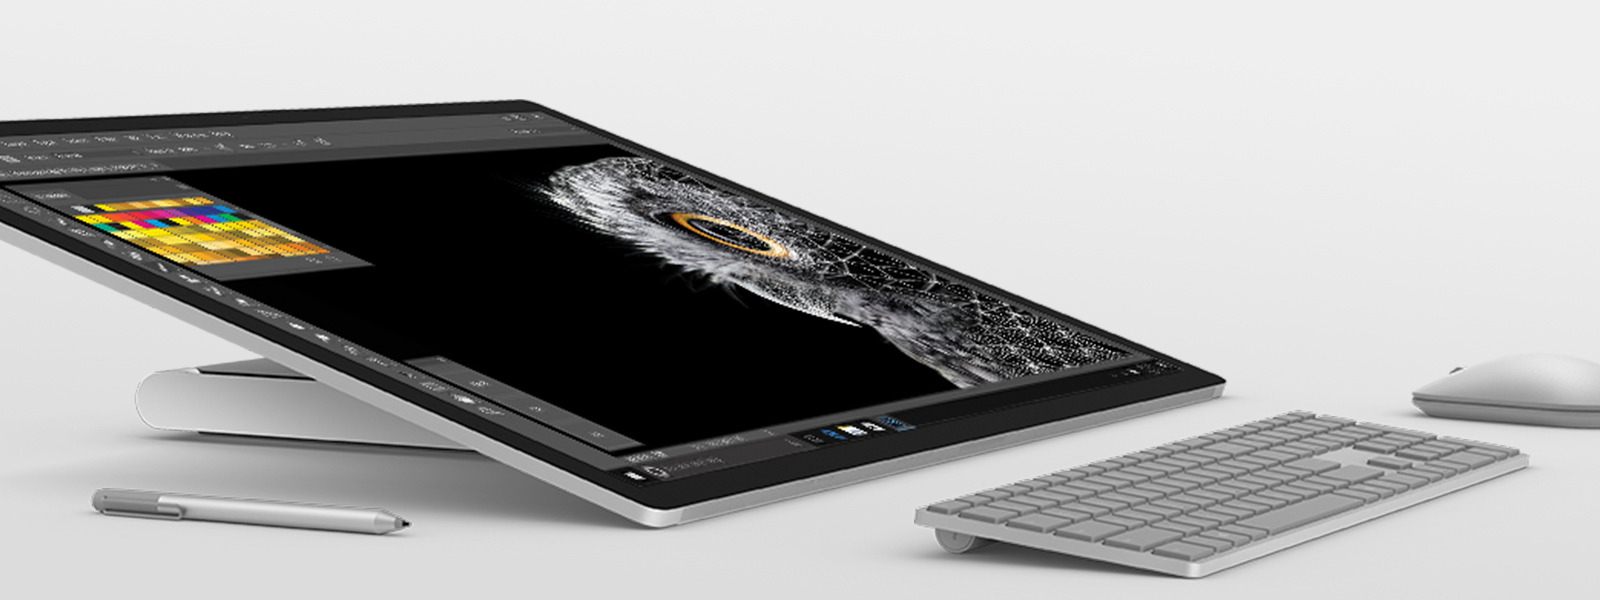 Microsoft Surface Studio Powerful Workstation Designed For The